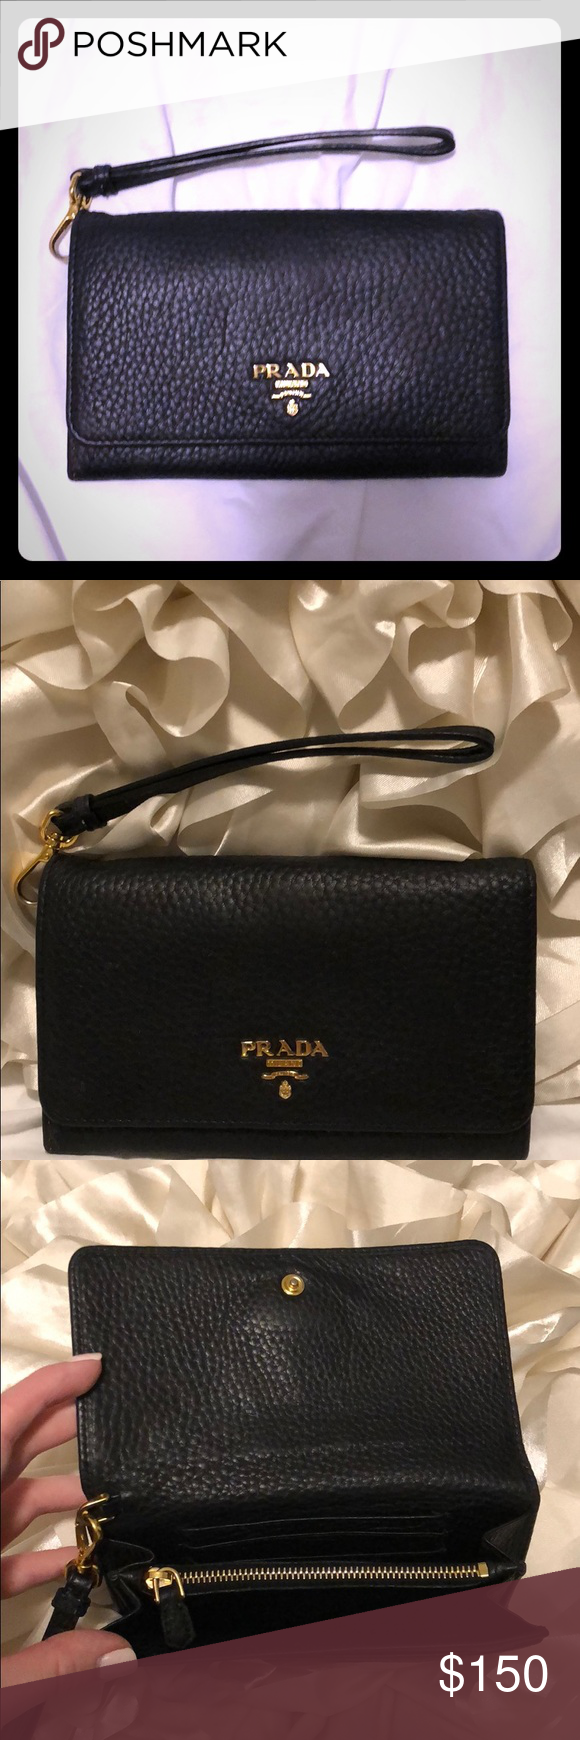 d453d26b5651 Authentic Prada Leather Wallet/Clutch Authentic Prada Wristlet/Wallet/Clutch  in Nero Black with Gold Accents Prada Bags Wallets